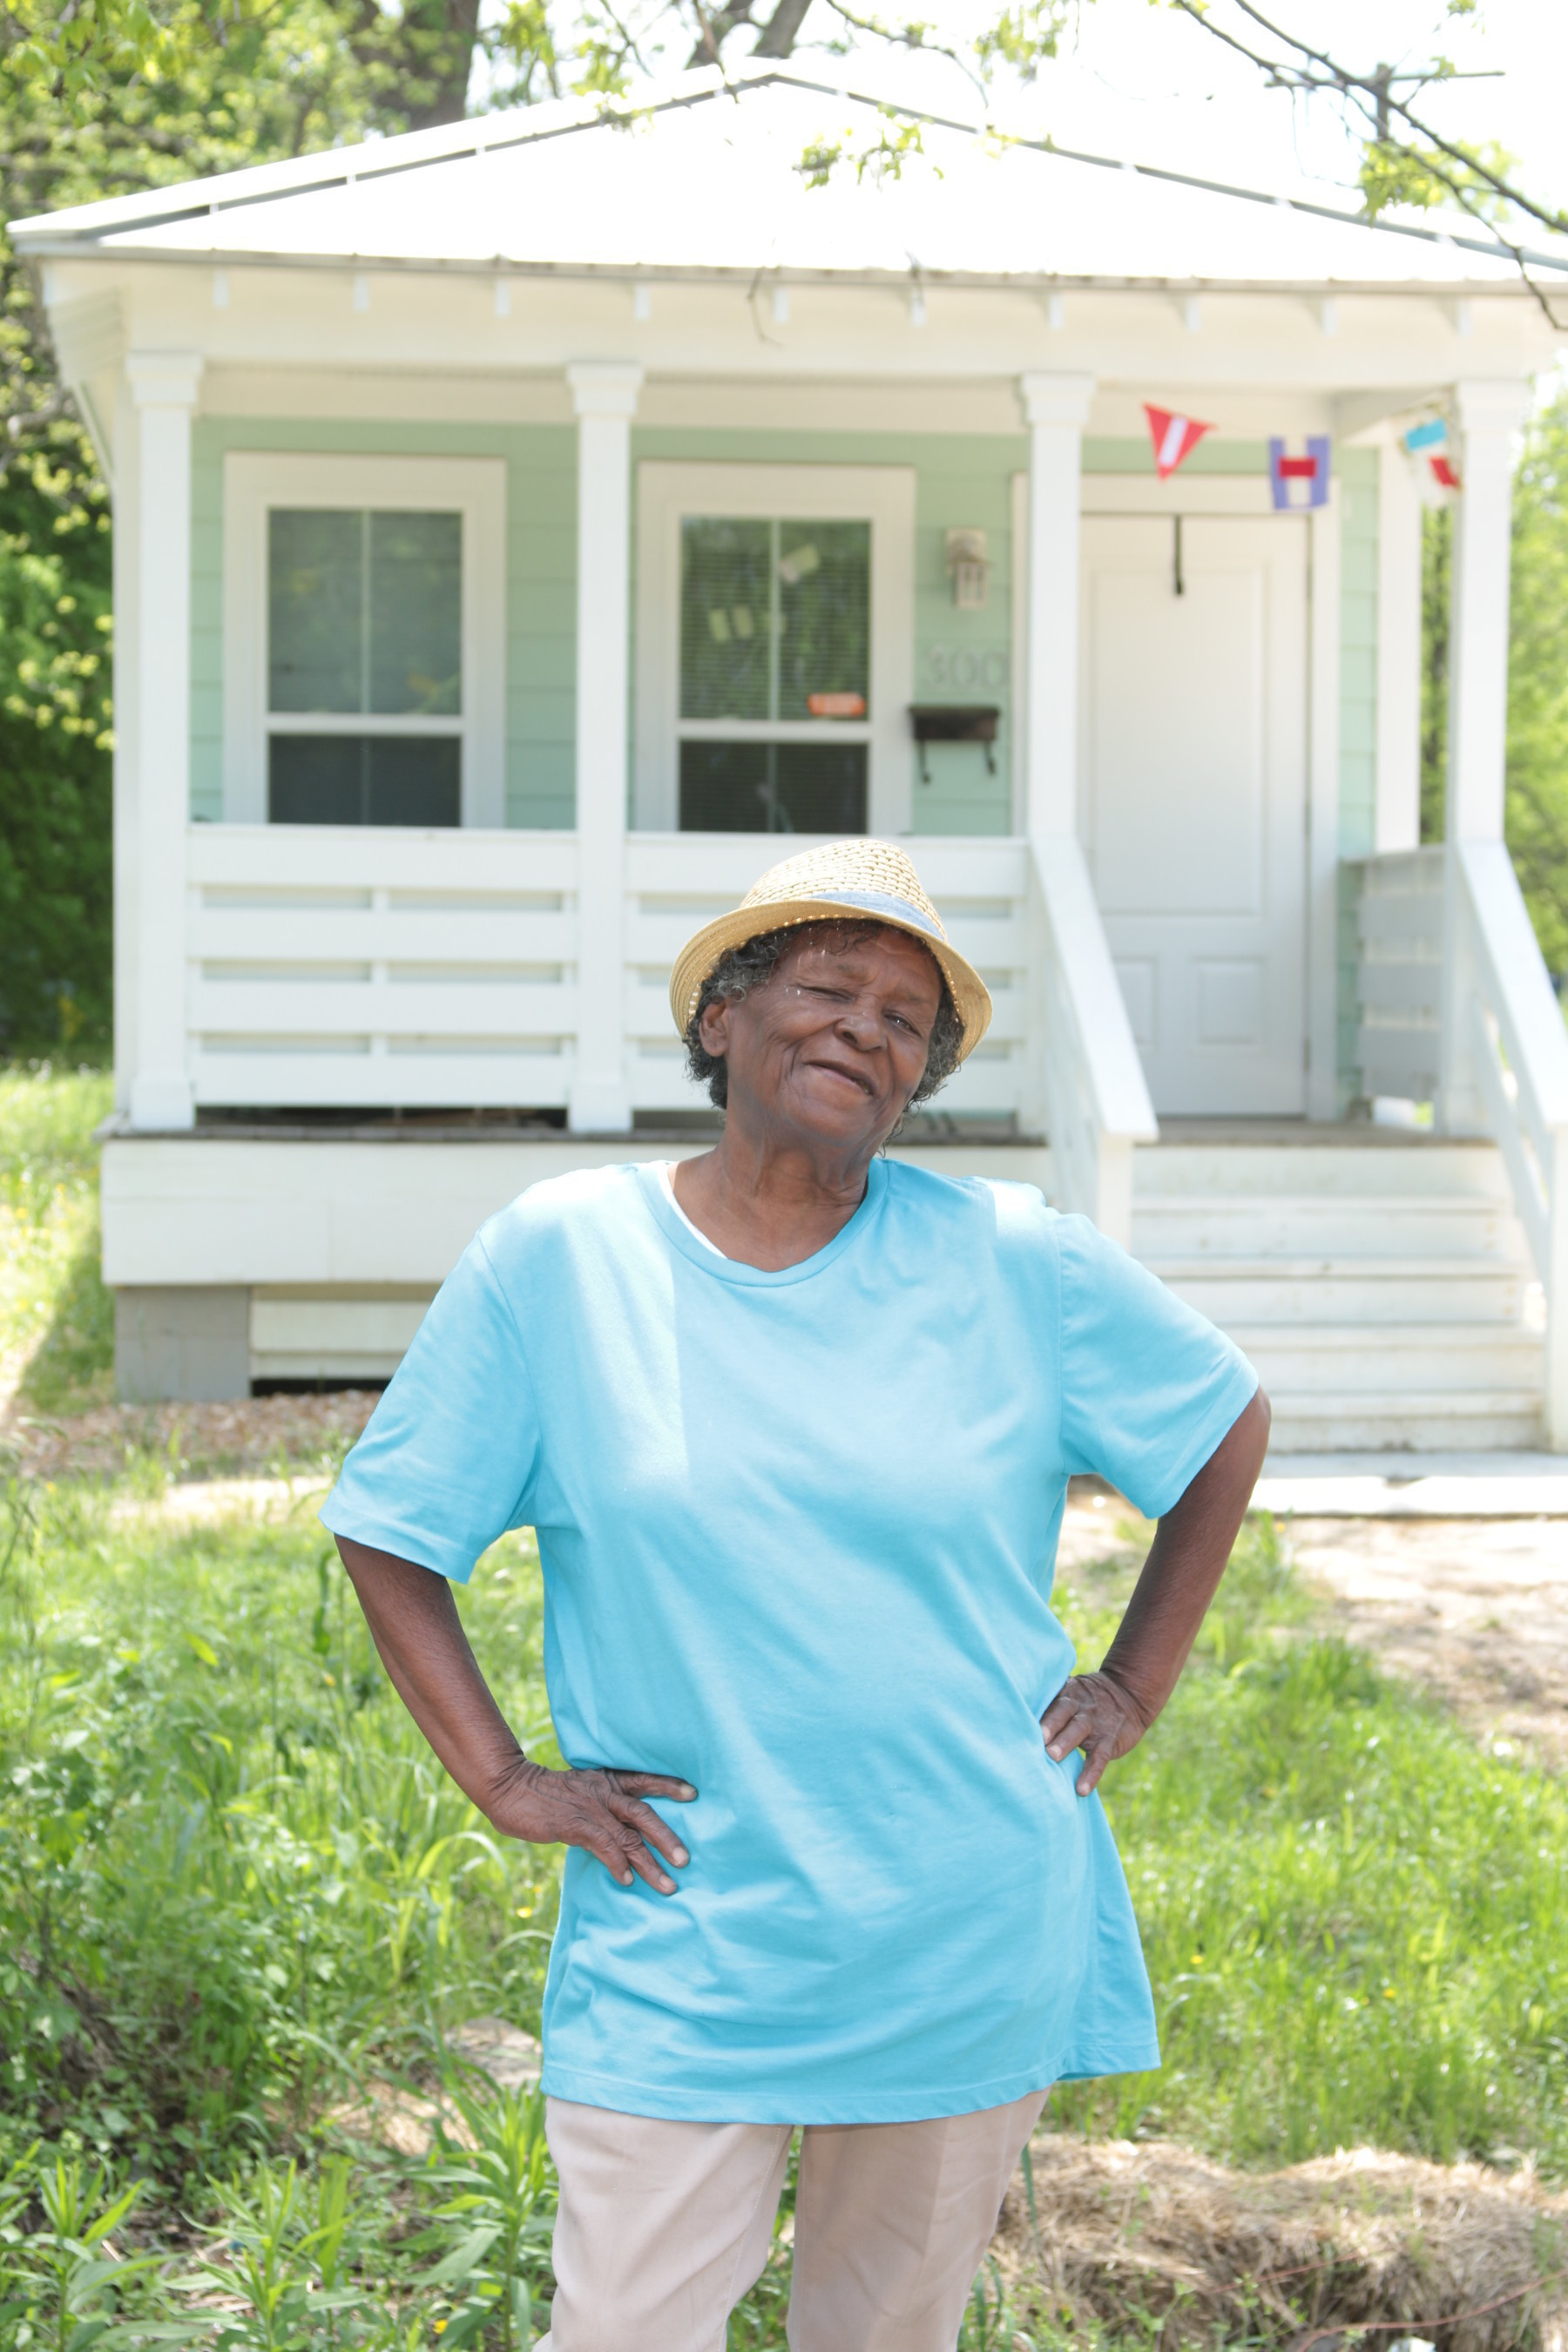 Dorothy Russell, 61, knows you can go home again. She was awarded a Homebuyer Equity Leverage Partnership grant from Planters Bank & Trust Company and FHLB Dallas which was put toward her down payment on her new home. Her new home is located on the same lot of her childhood home.